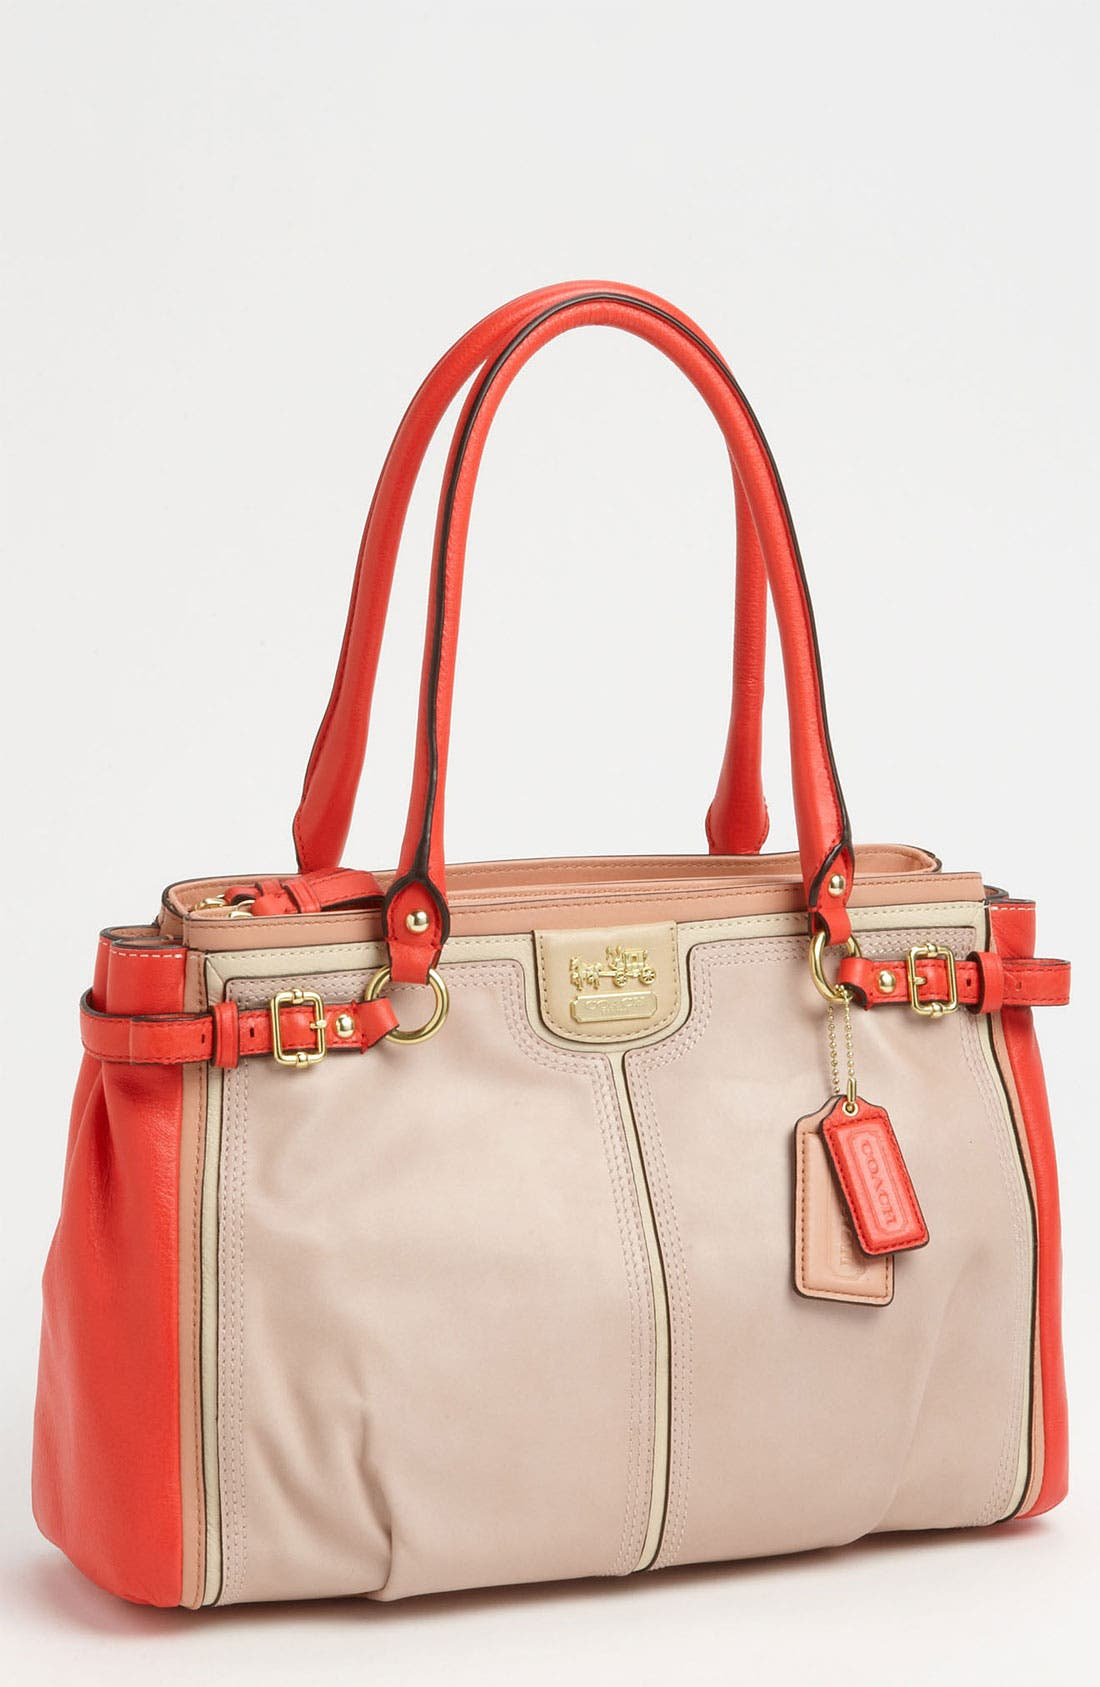 Alternate Image 1 Selected - COACH 'Madison - Kara' Colorblock Satchel